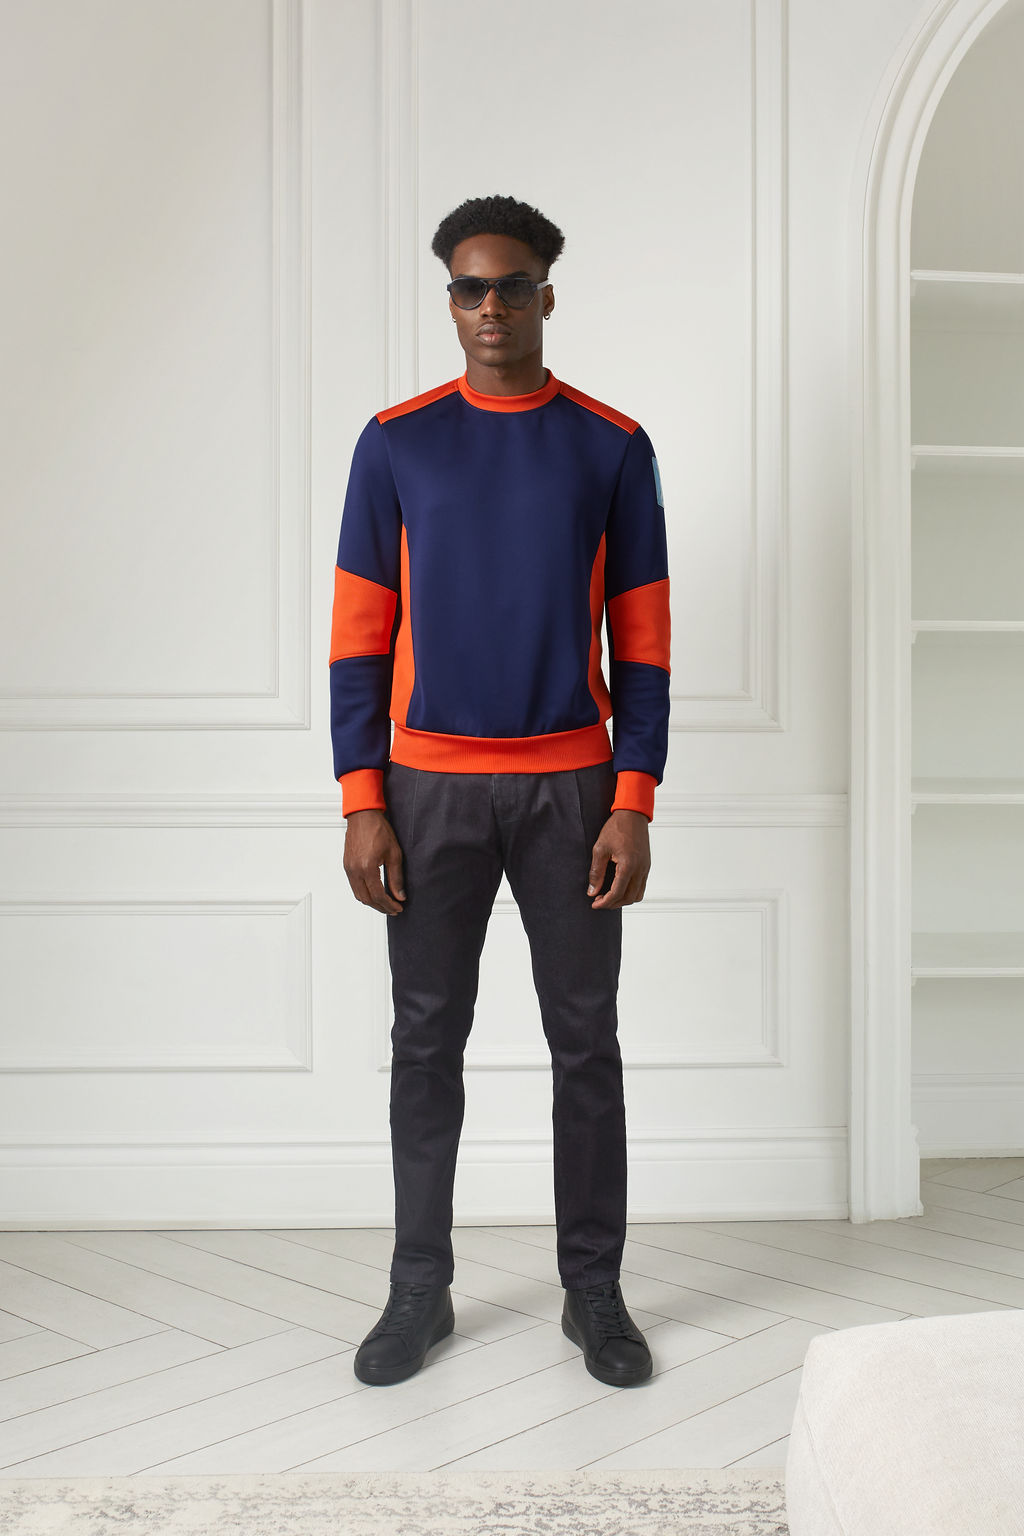 Male Modal with Sweater By Christopher Bates